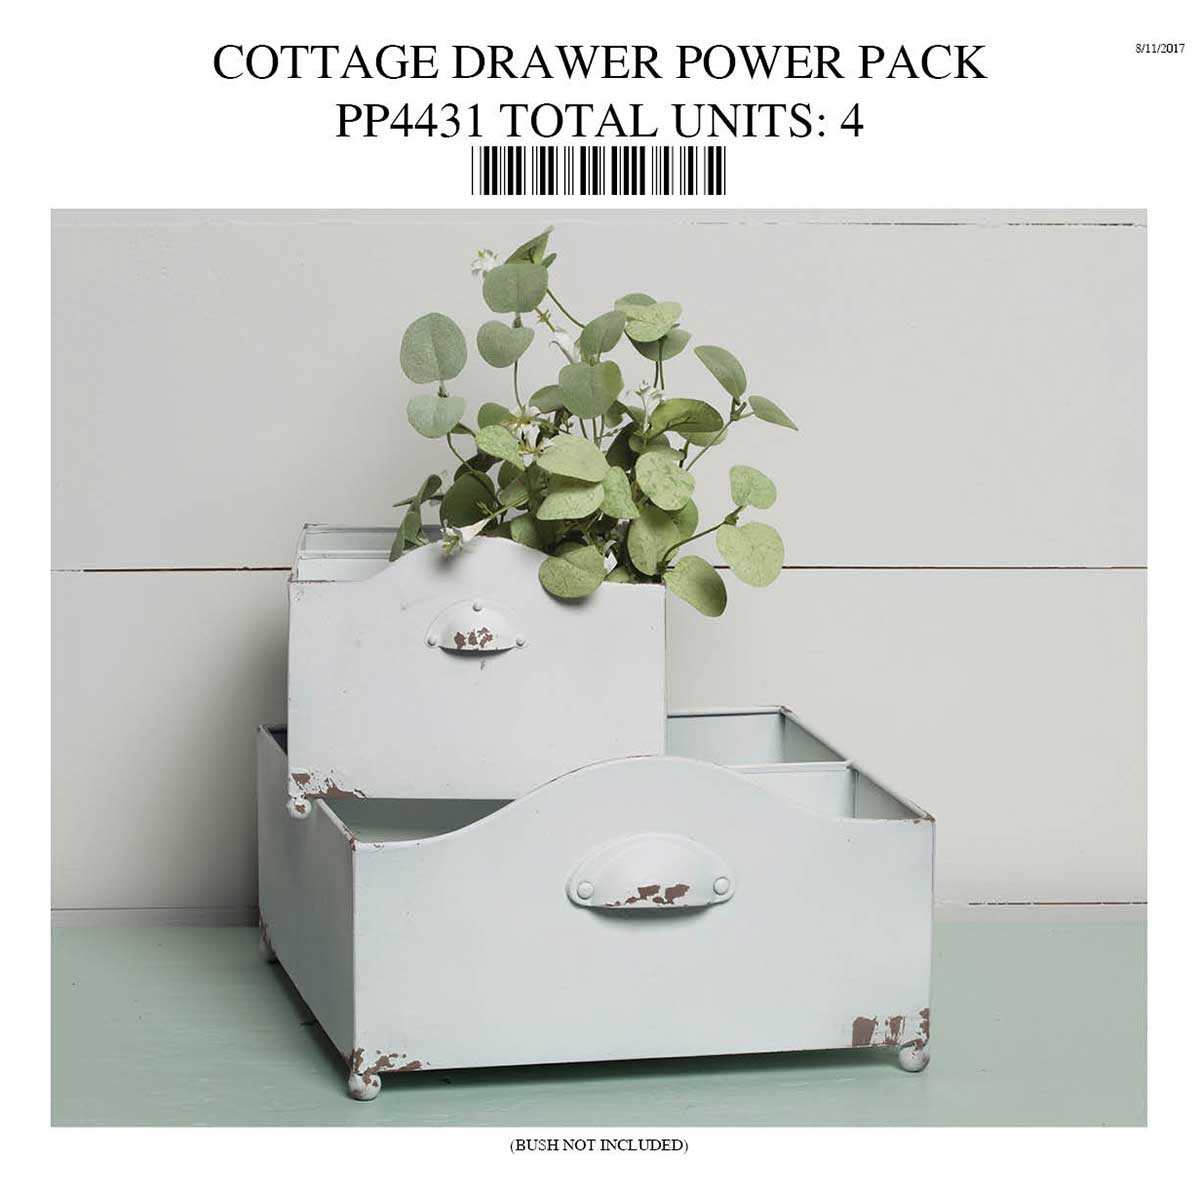 COTTAGE DRAWER POWER PACK PP4431